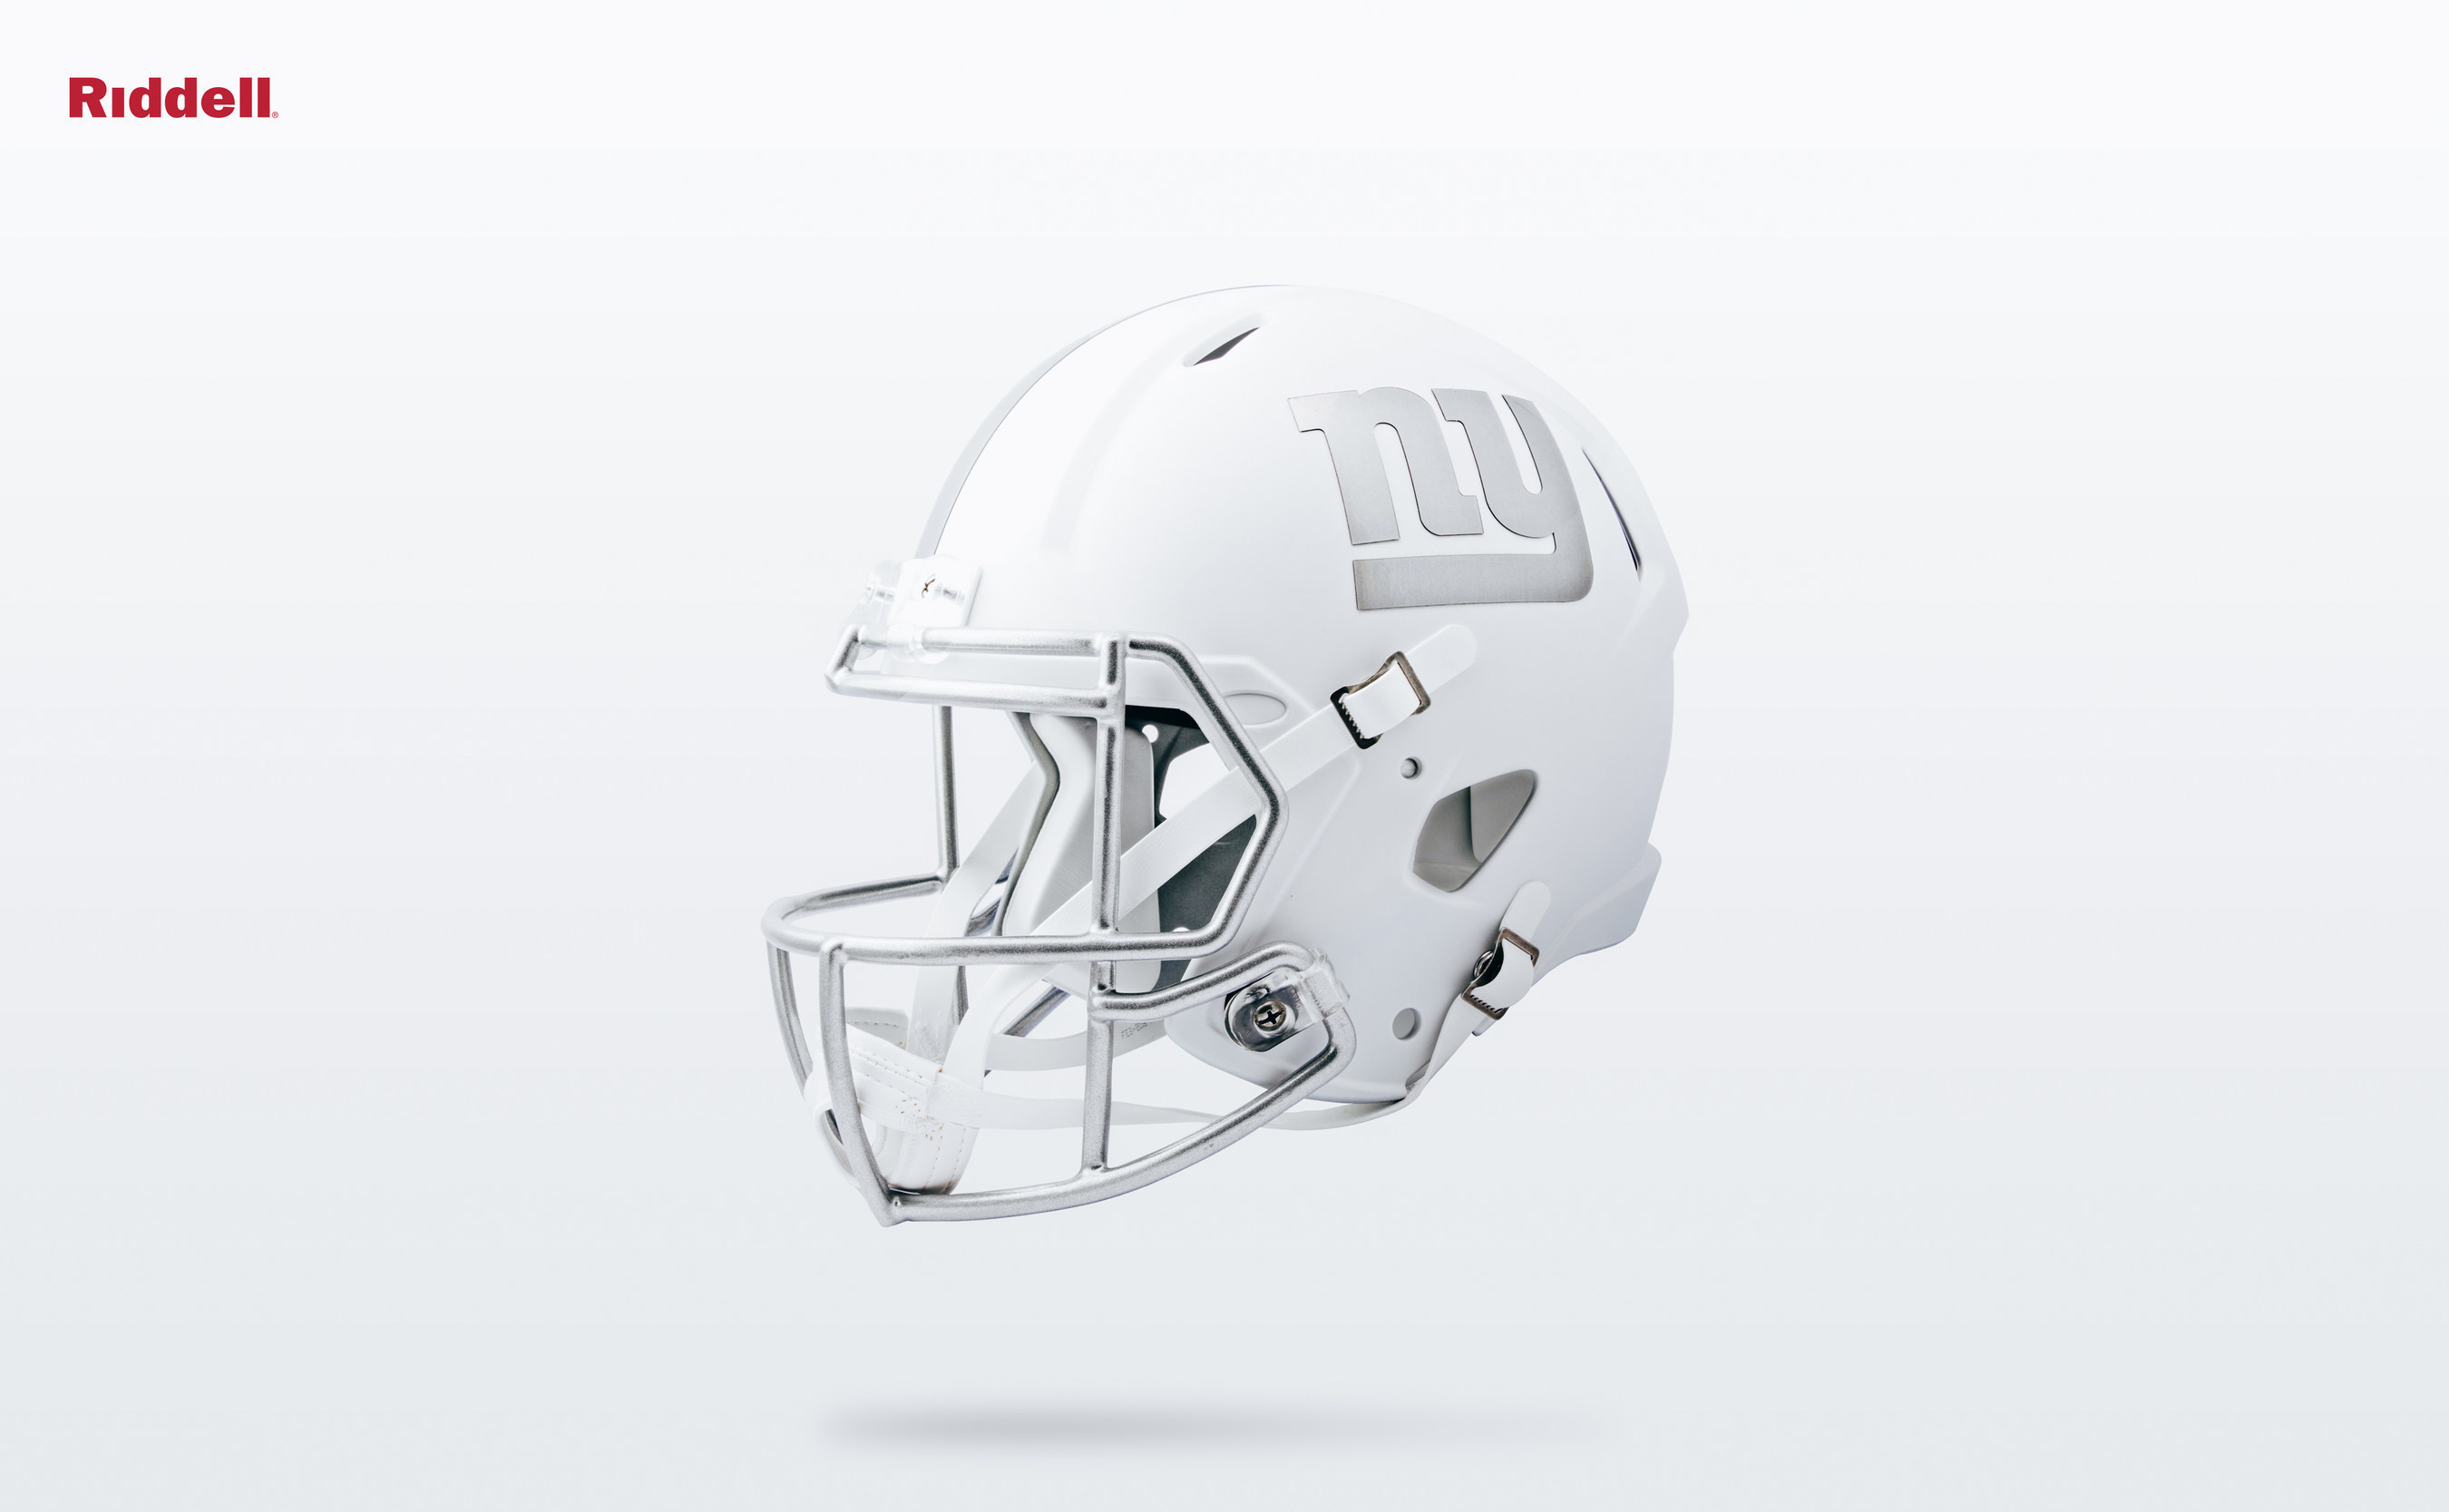 Riddell Announces New ICE Helmet Design, the First NFL Approved Alternate for Licensed Collectibles